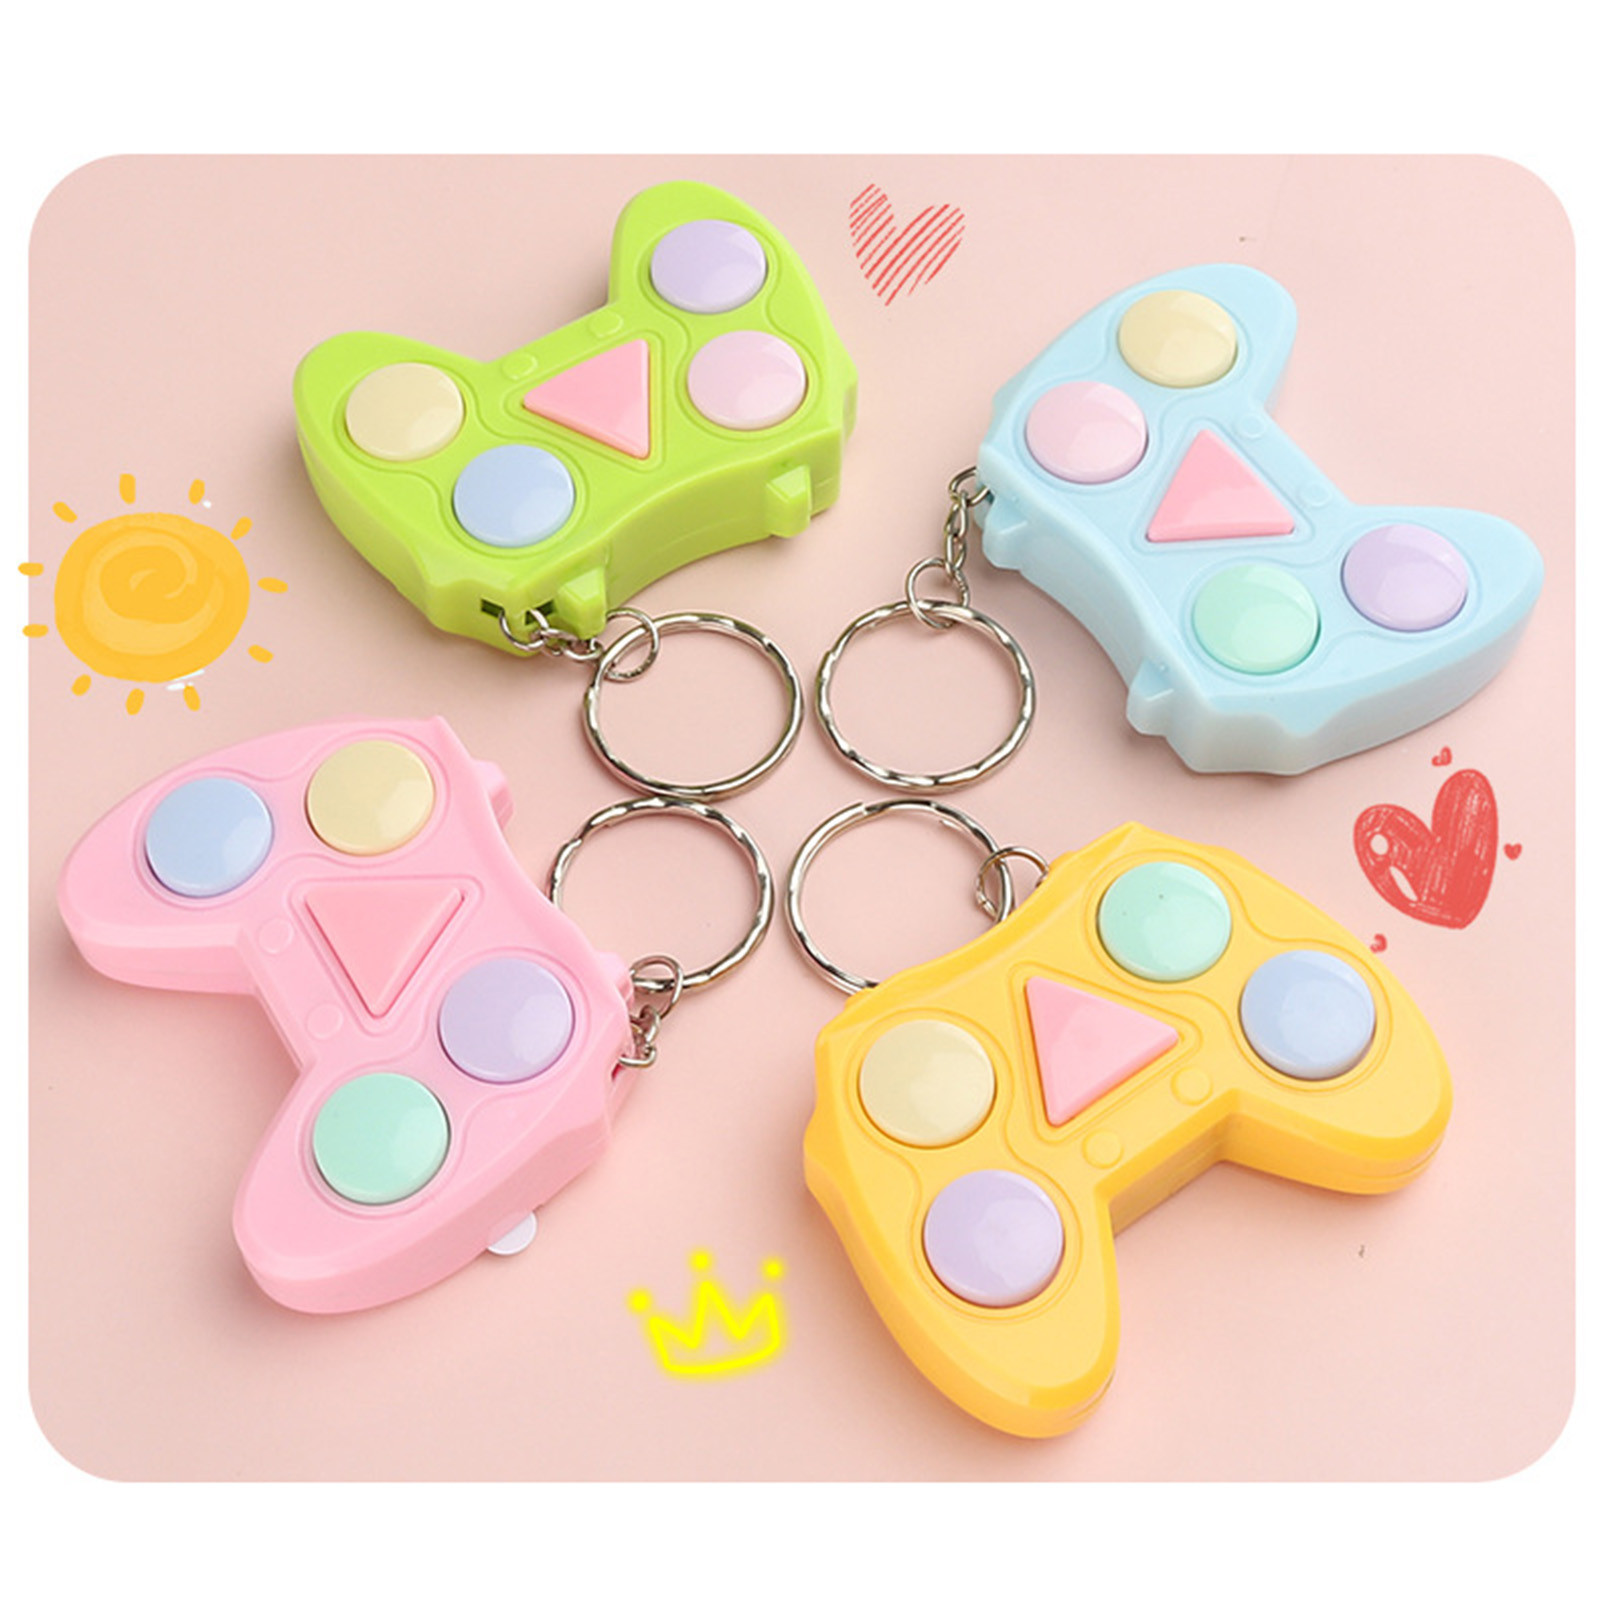 Stress Relief Fidget-Toy-Pack Memory Color-Game-Machine Keychain Gadget Mini-Handle Training img1